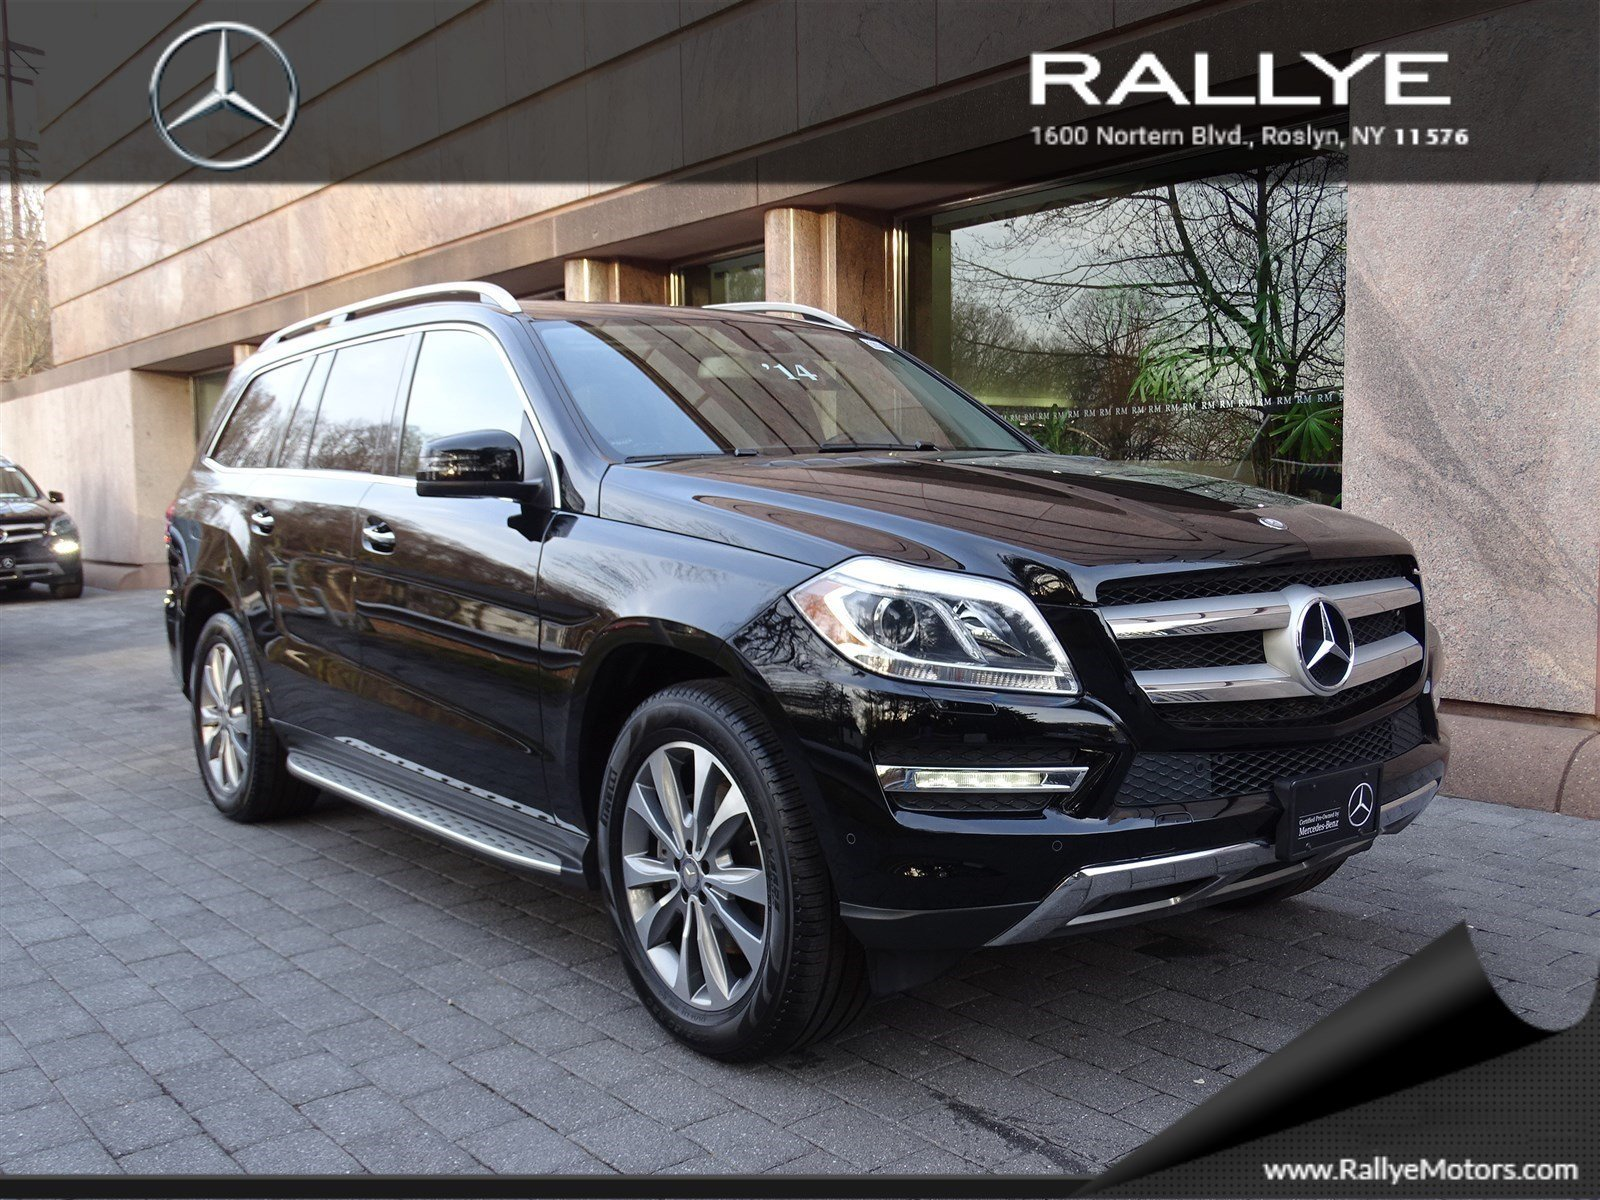 Certified pre owned 2014 mercedes benz gl gl450 suv in for 2014 mercedes benz gl450